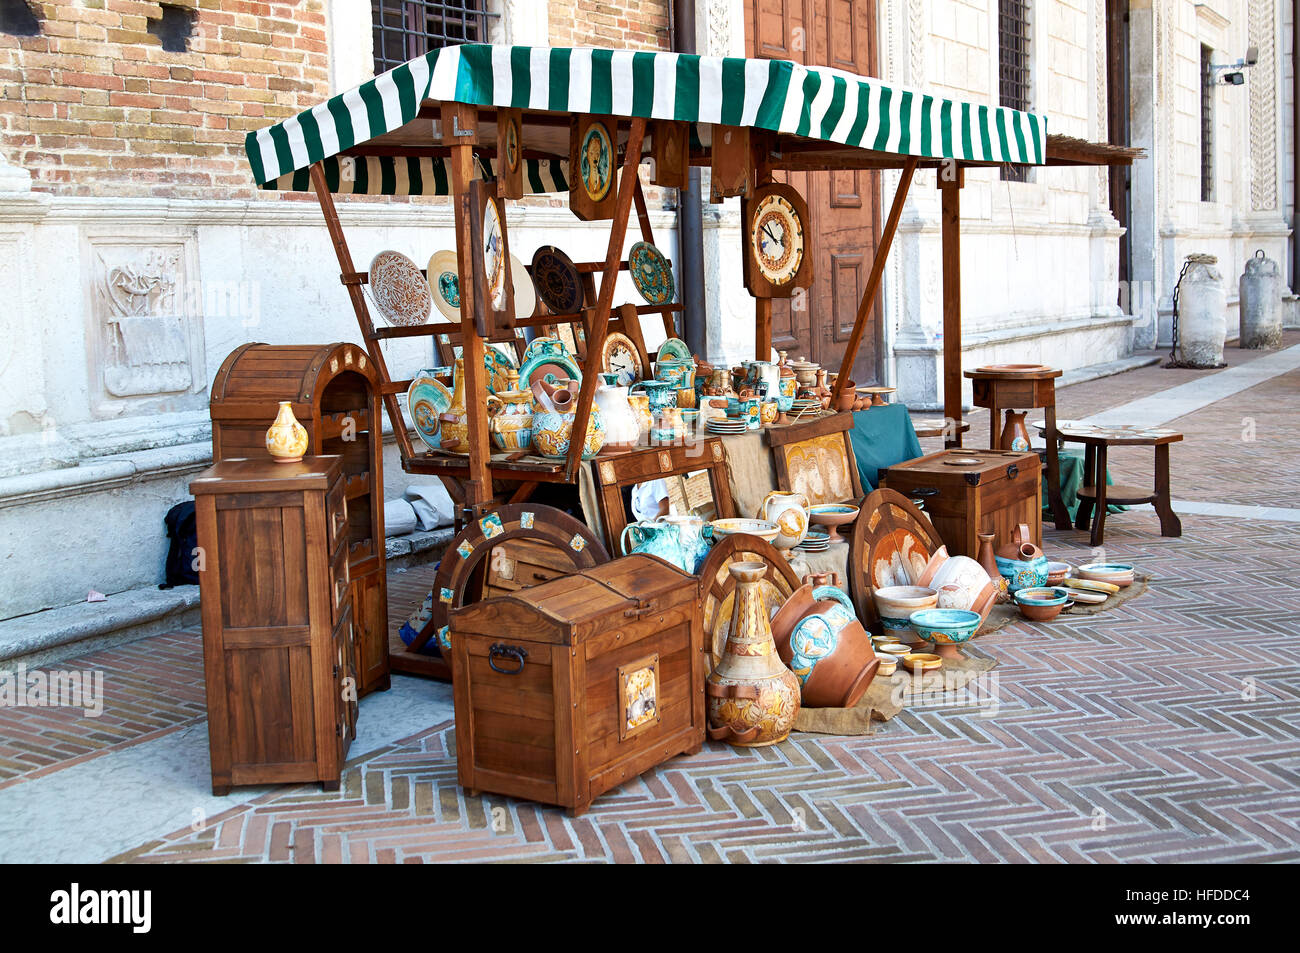 Village fair vintage Handicrafts. Pottery, leather and wooden objects on the table. On a Sunny summer day. - Stock Image